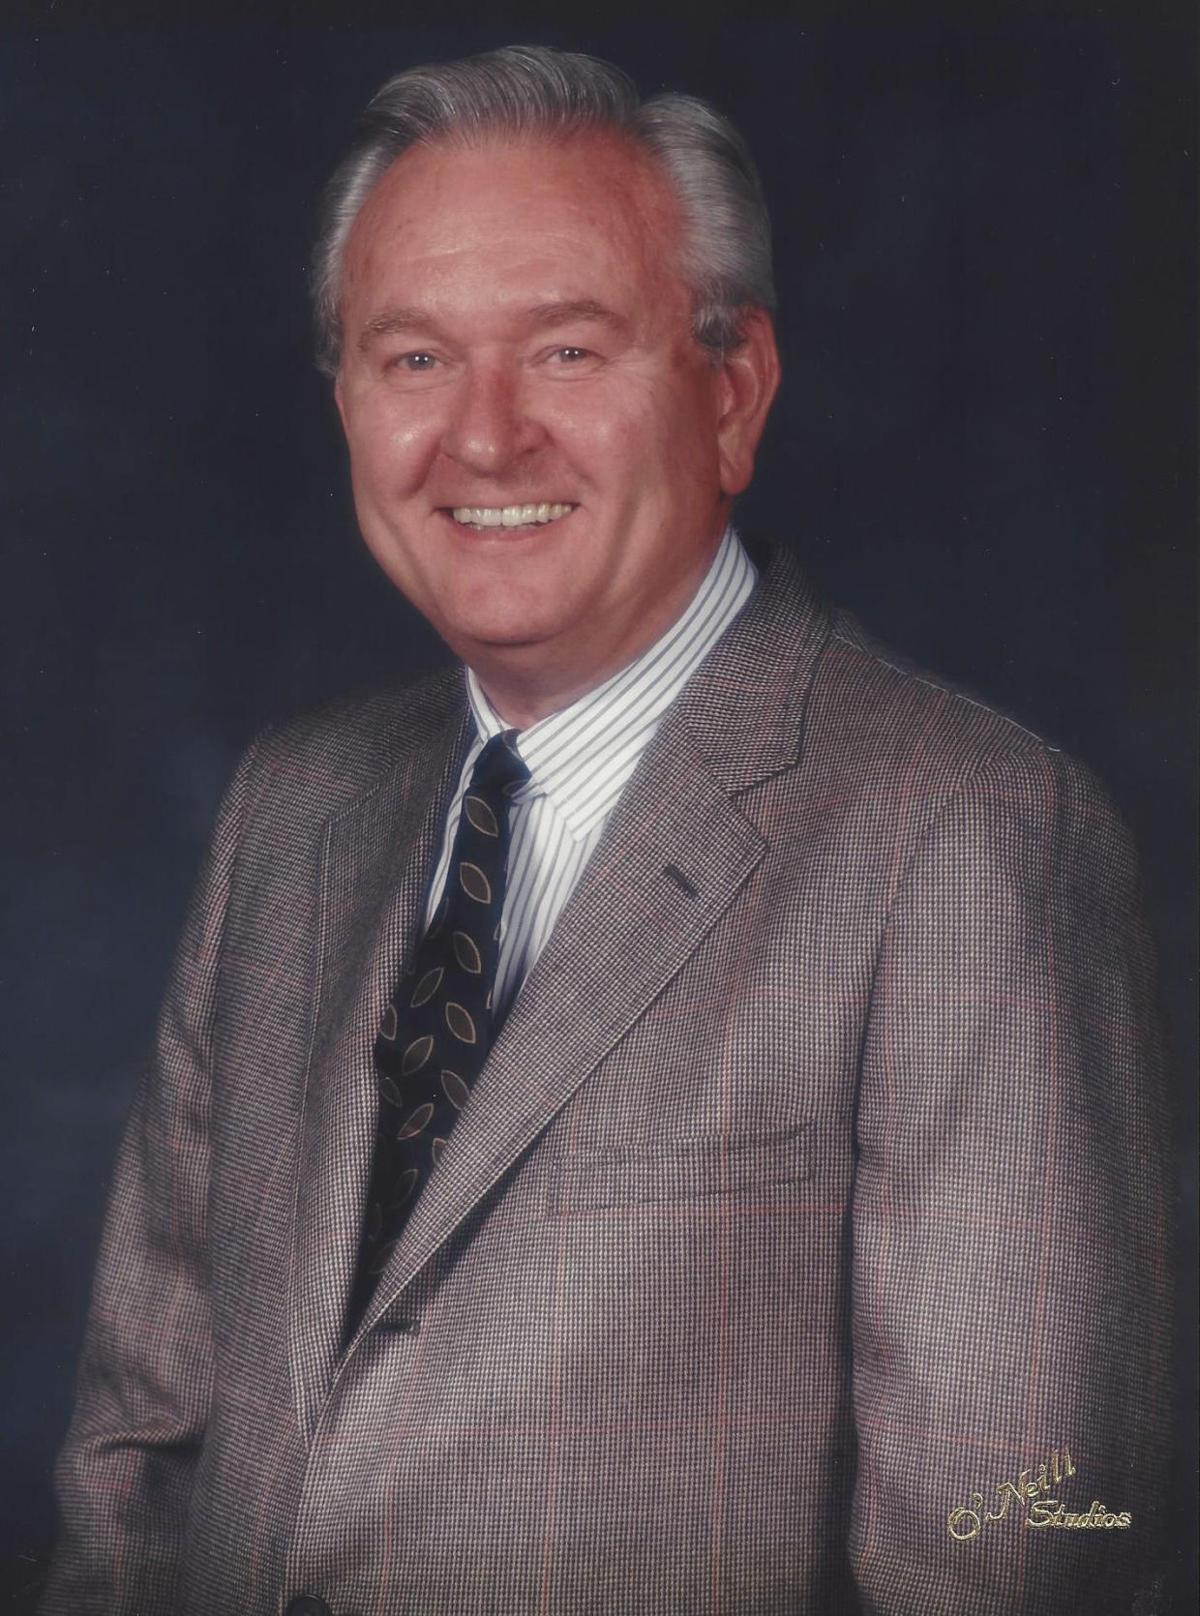 obit edwards